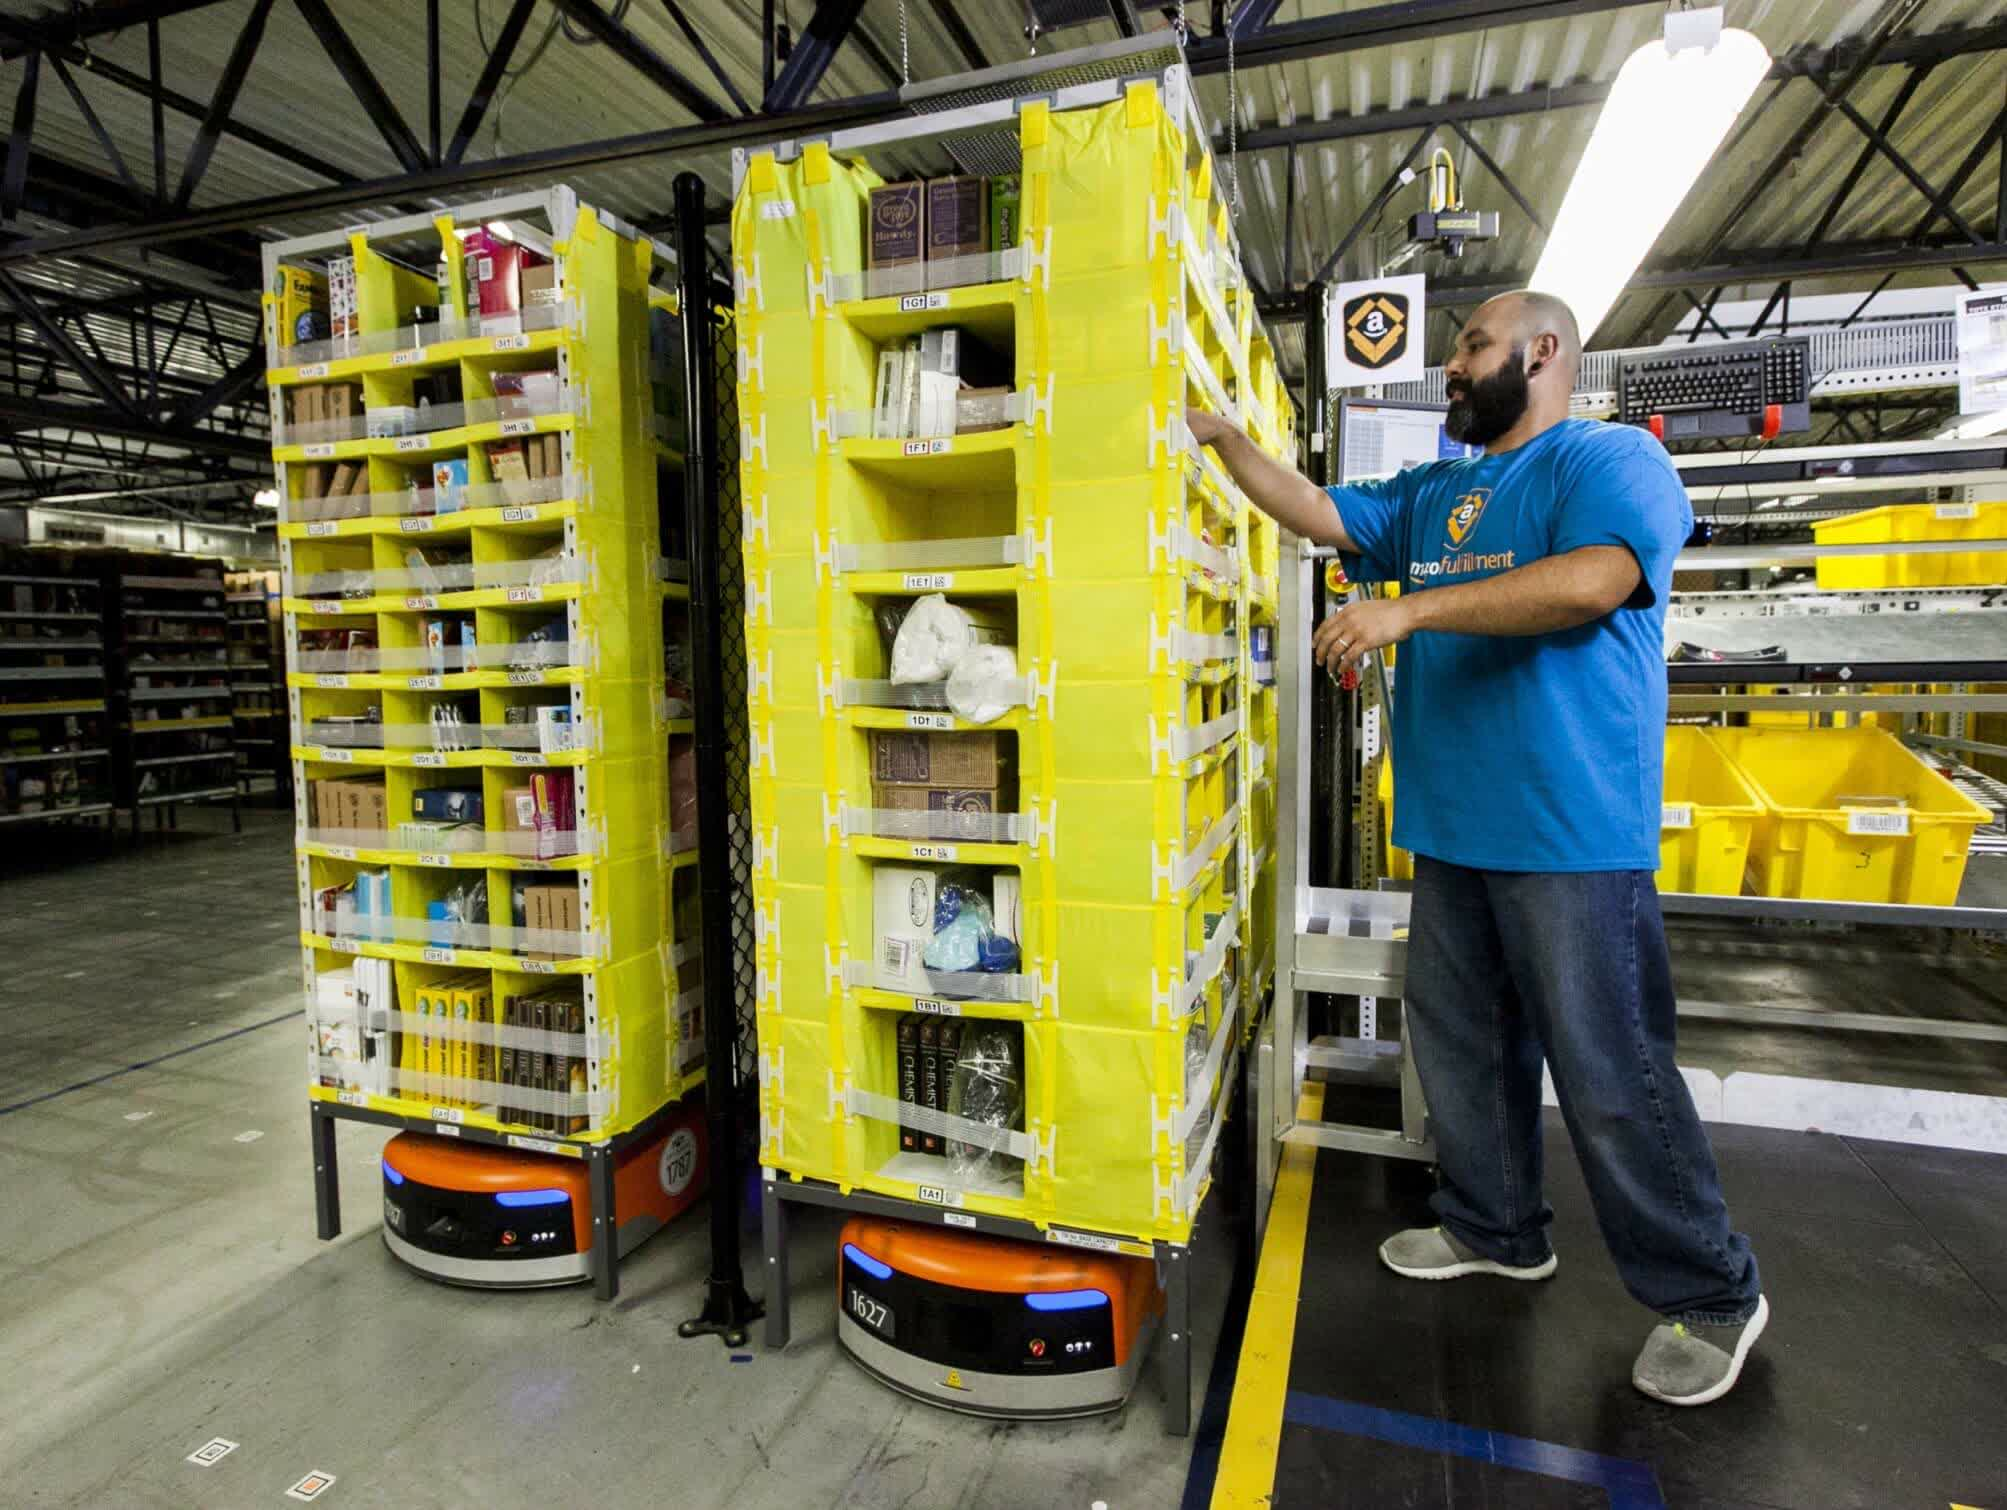 Amazon is hiring 100,000 other folks in Canada and the U.S. thumbnail